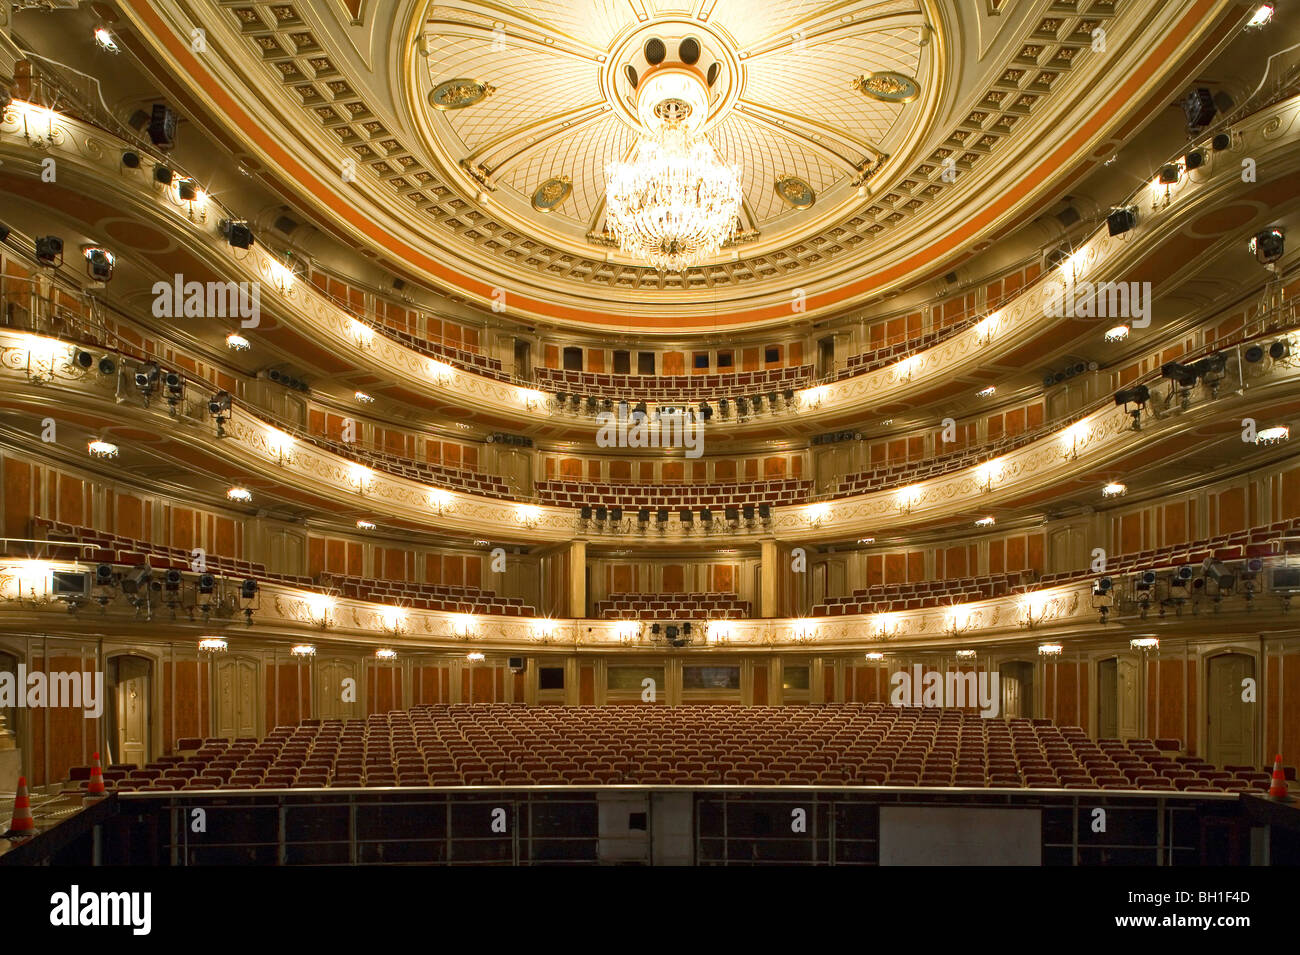 The deserted auditorium of the State Opera House, Unter den Linden, Berlin, Germany, Europe - Stock Image